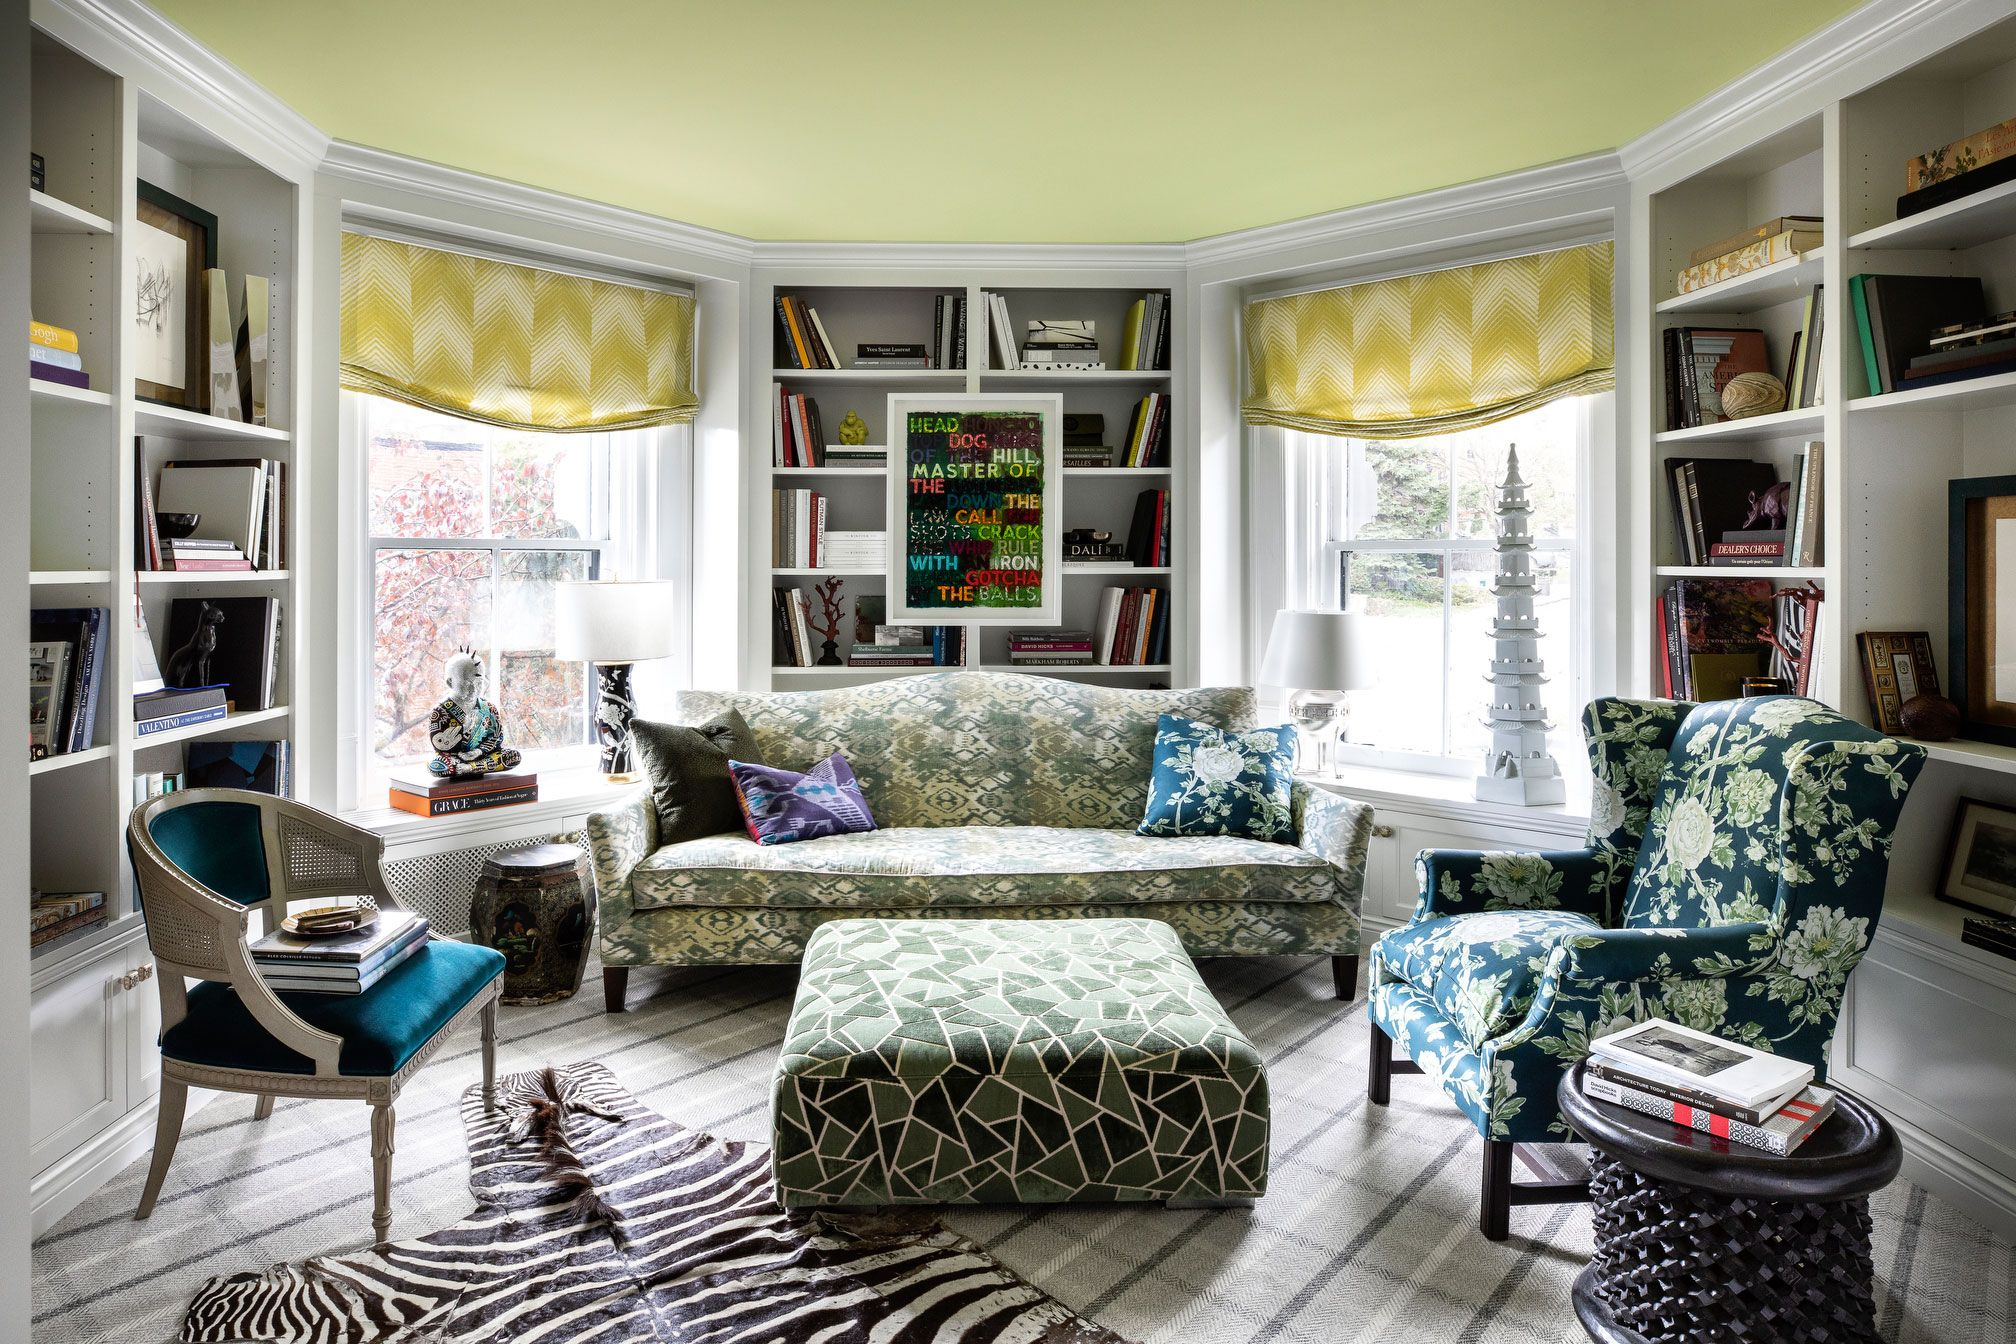 What Is Eclectic Style?